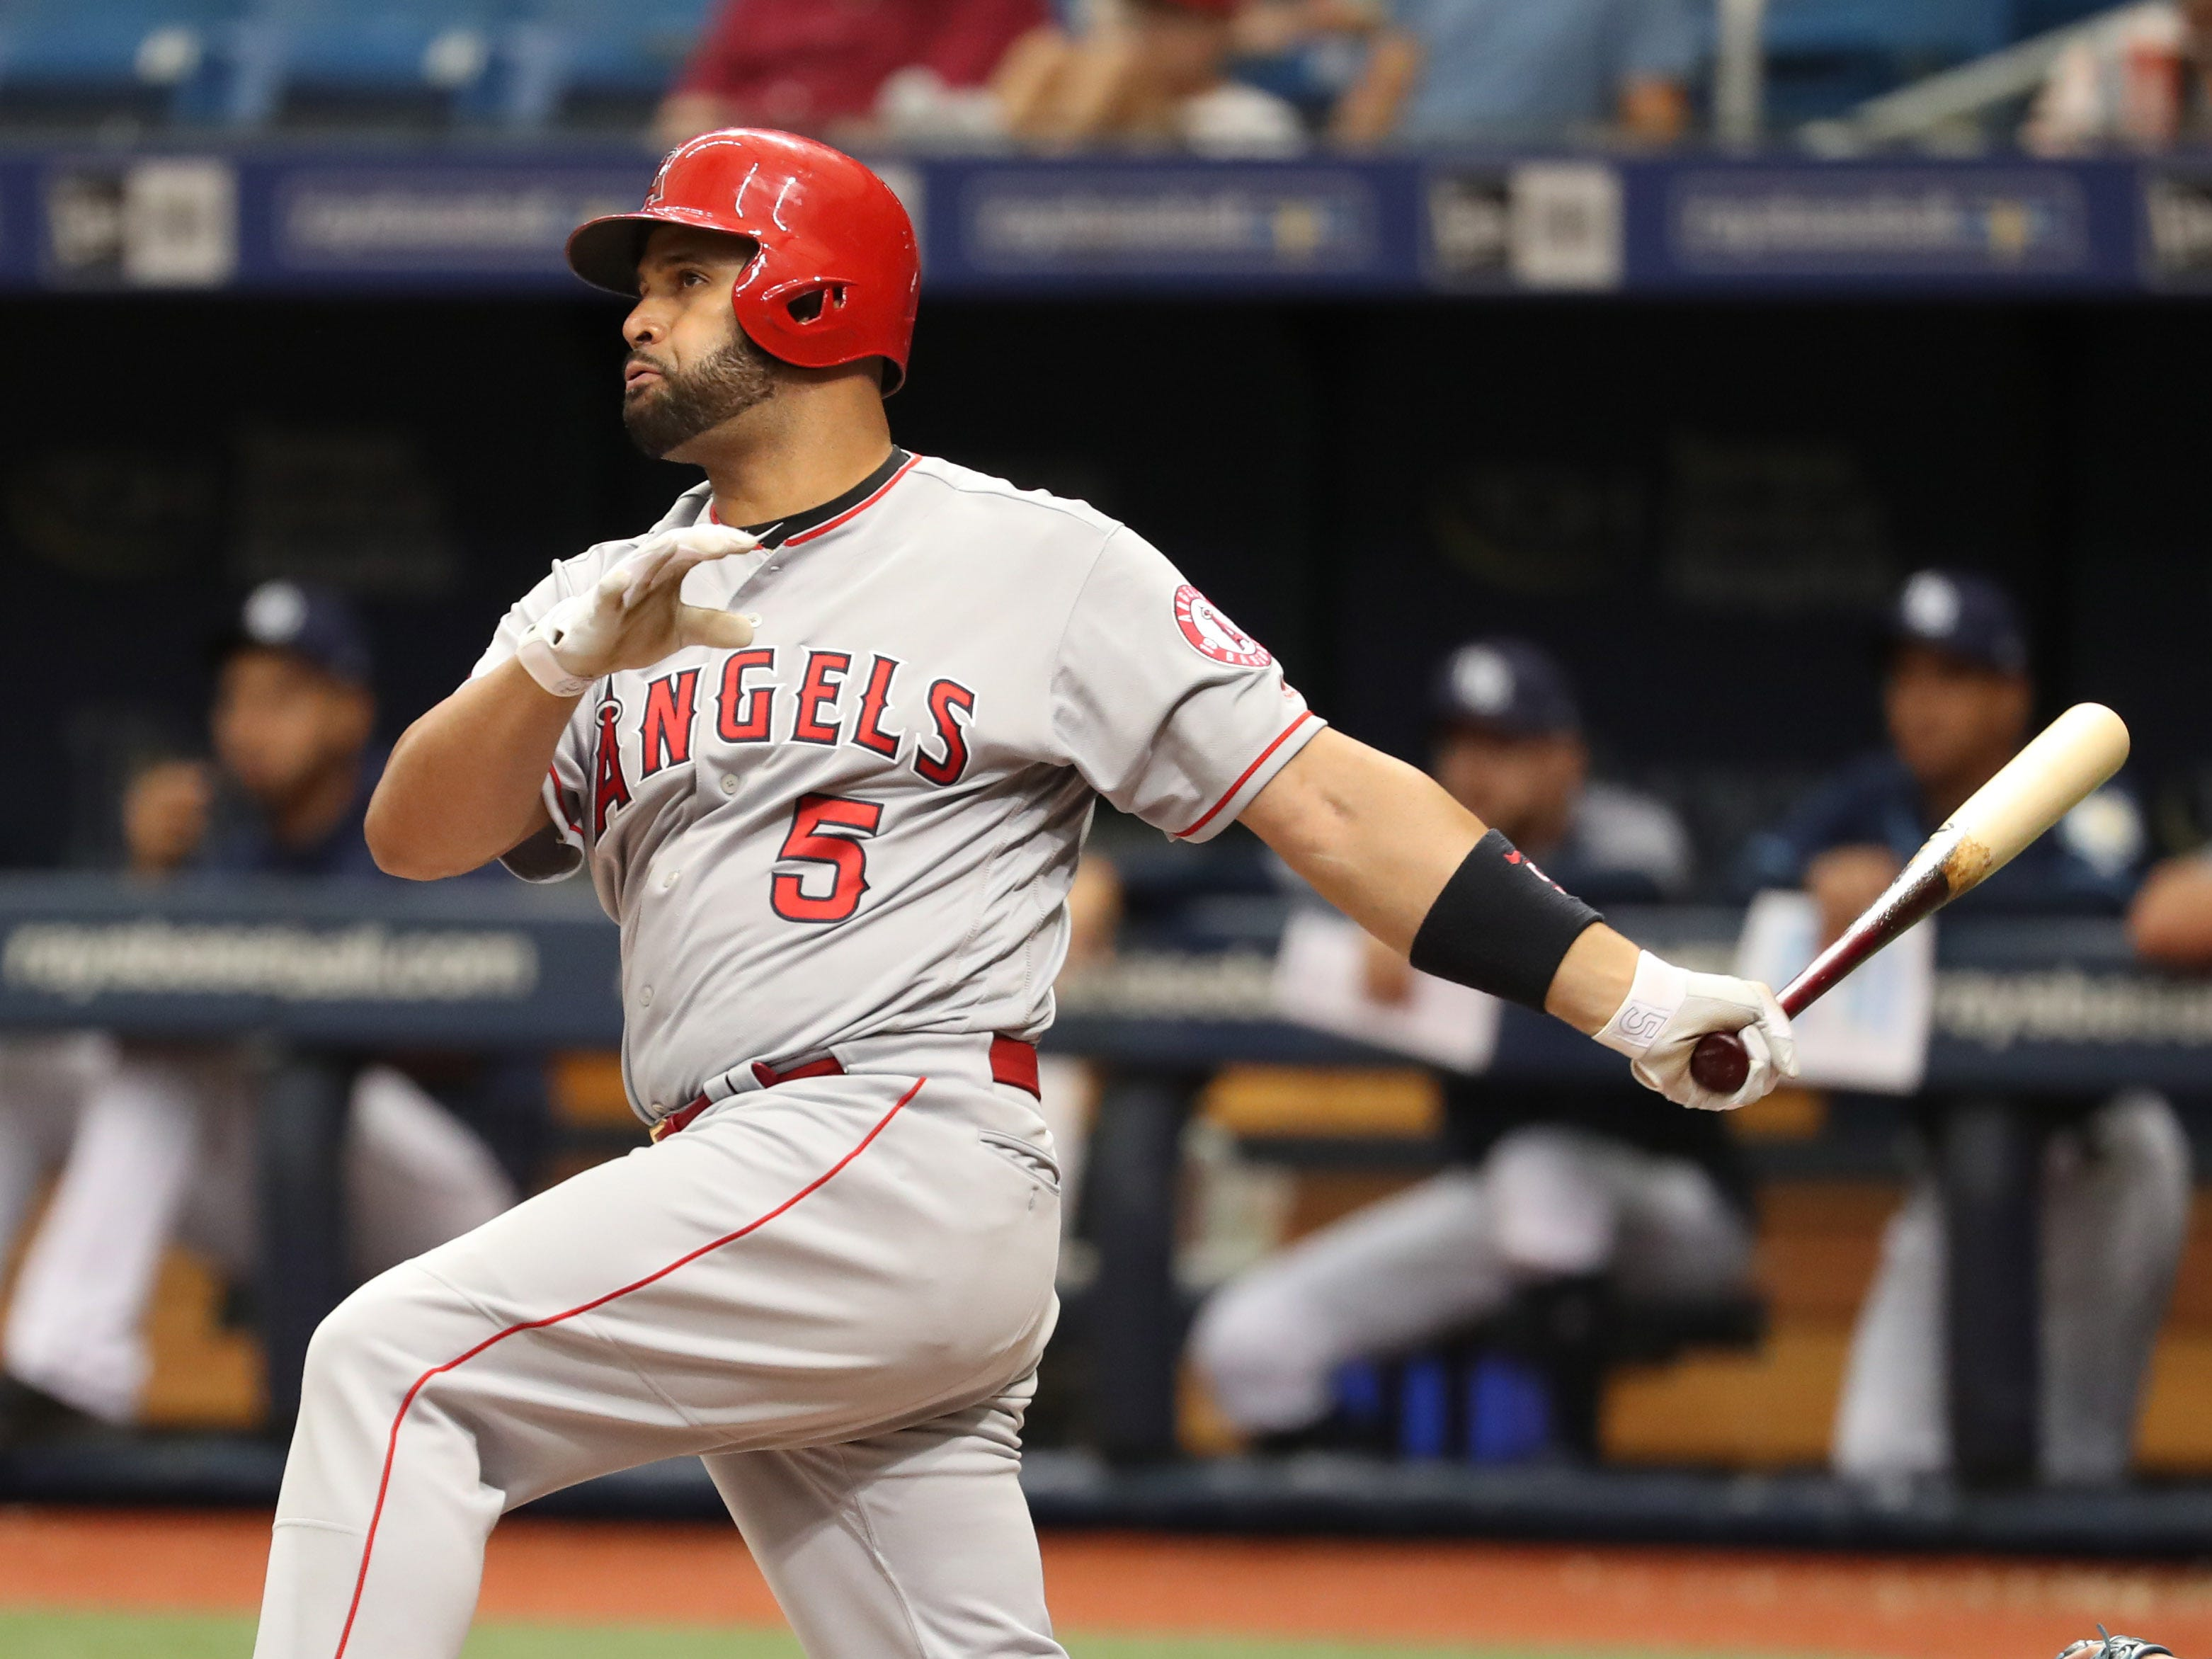 1b/DH Albert Pujols, Angels: $28,000,000